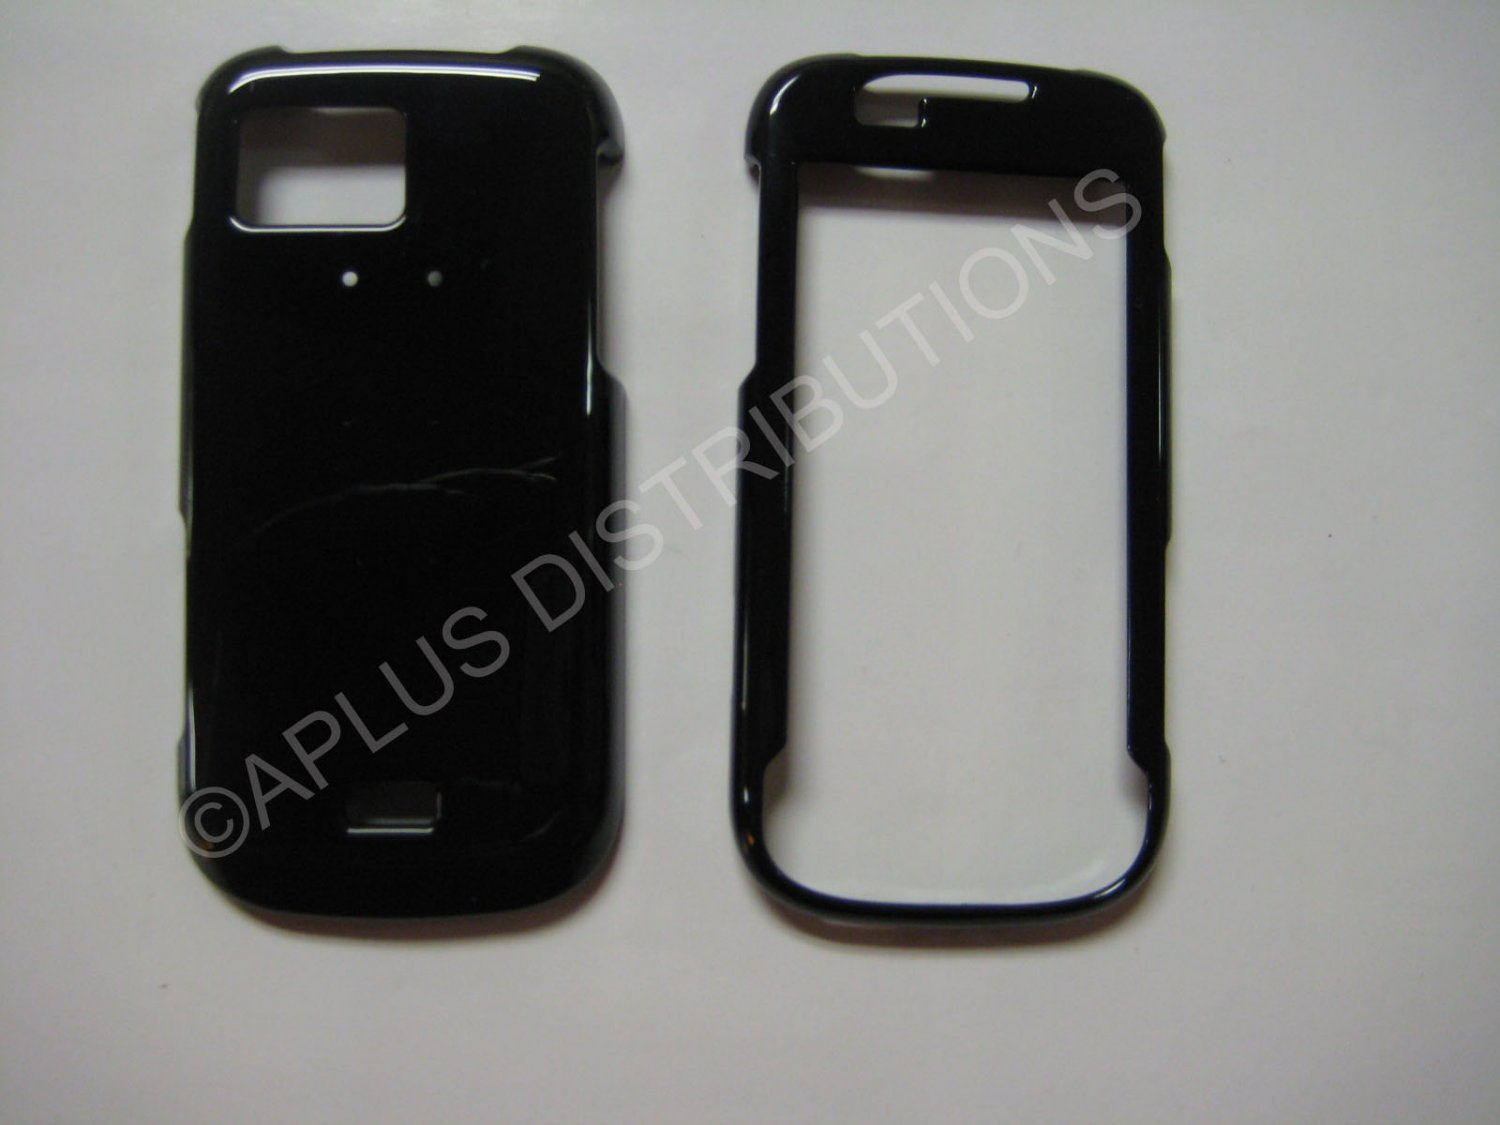 New Black Solid Color Hard Protective Cover For Samsung Mythic A897 - (0062)